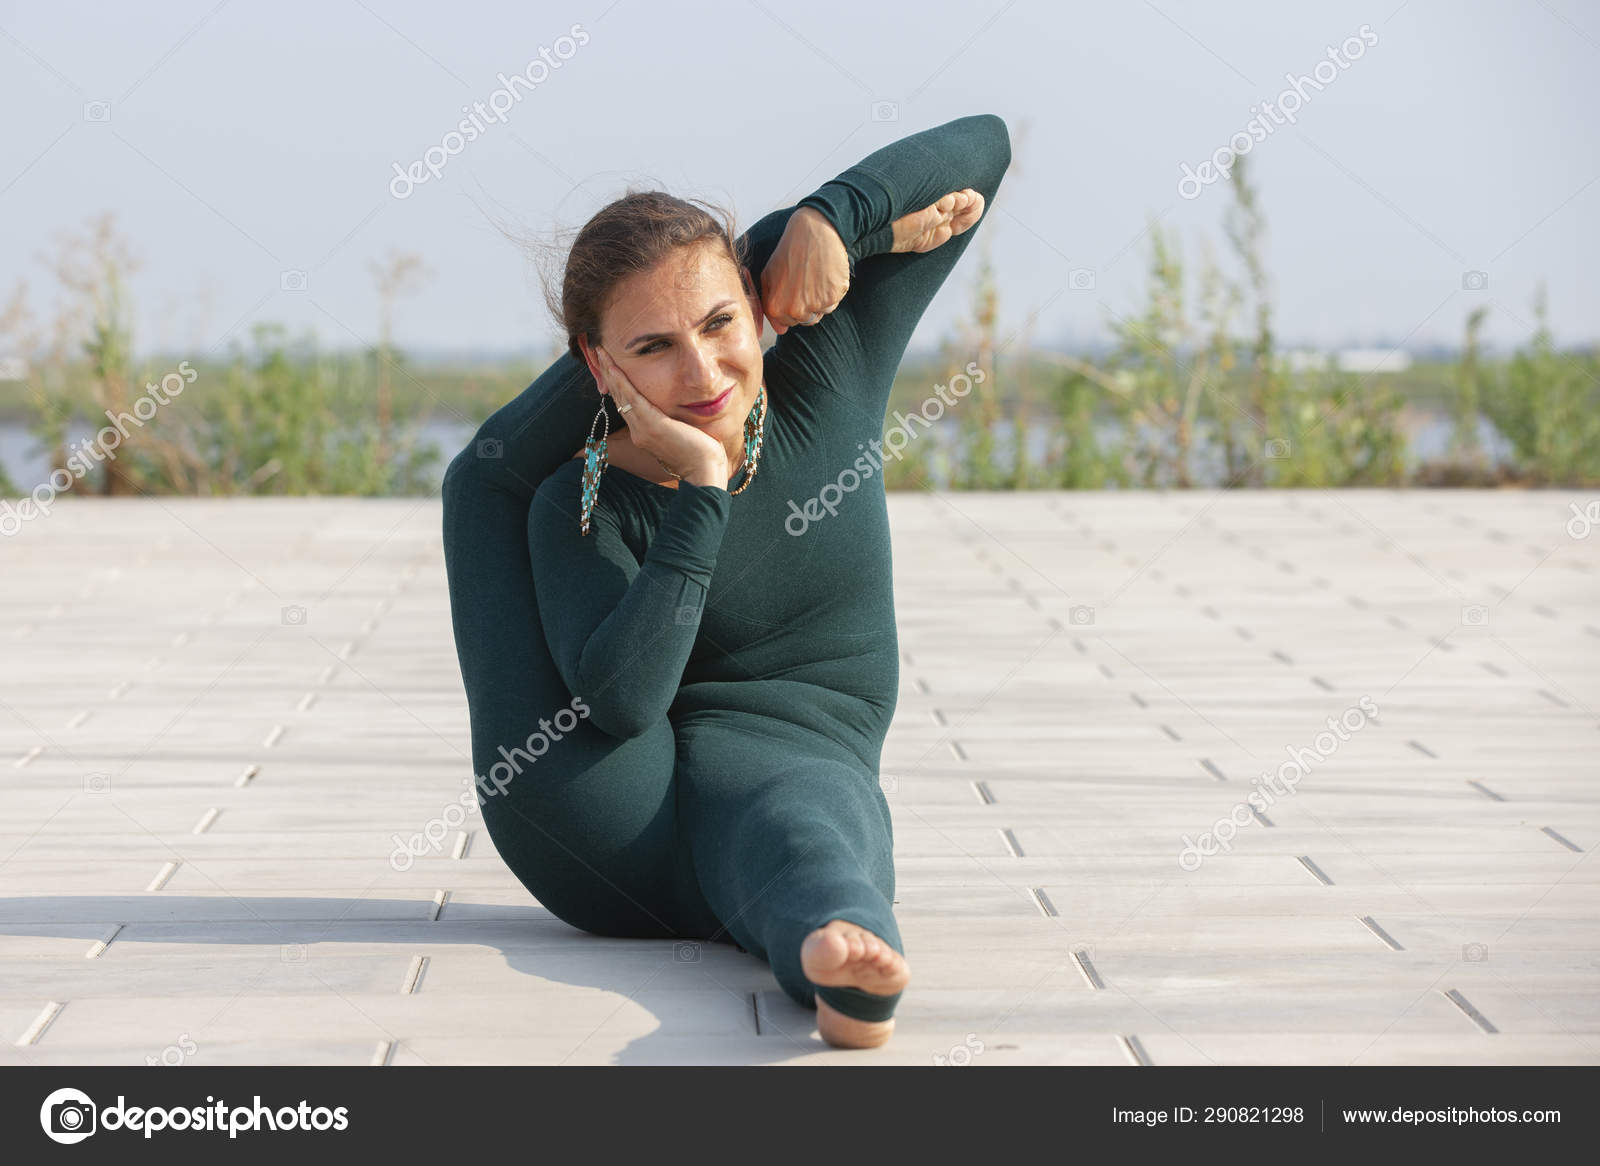 Thin Brunette Girl Plays Sports And Performs Beautiful And Sophisticated Yoga Poses In A Summer Park Stock Photo C Biggur 290821298